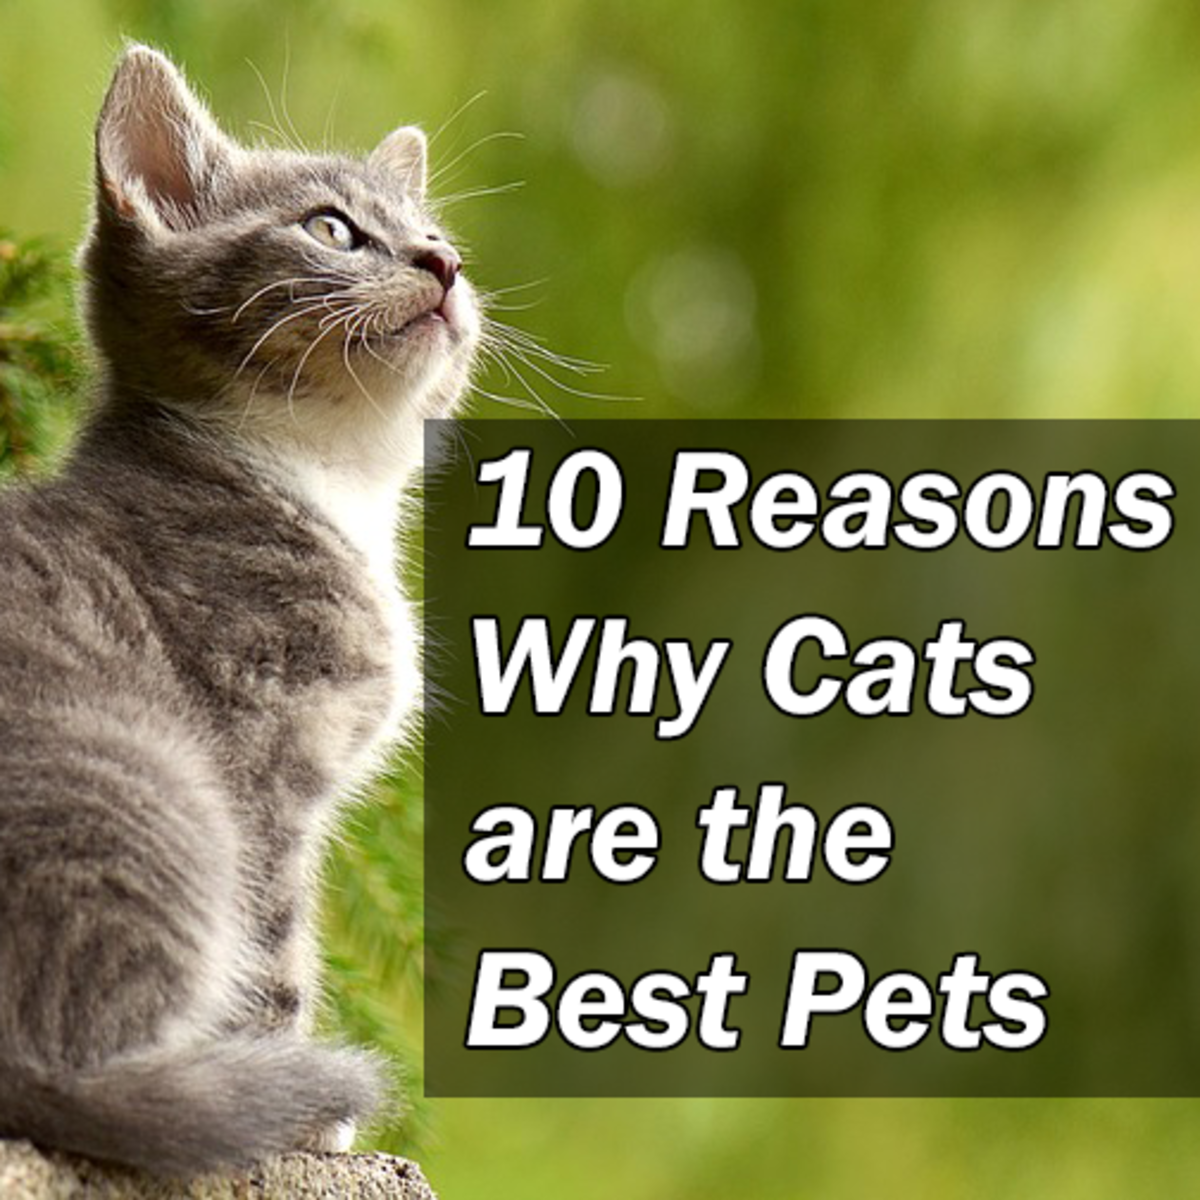 10 Reasons Why Cats are the Best Pets